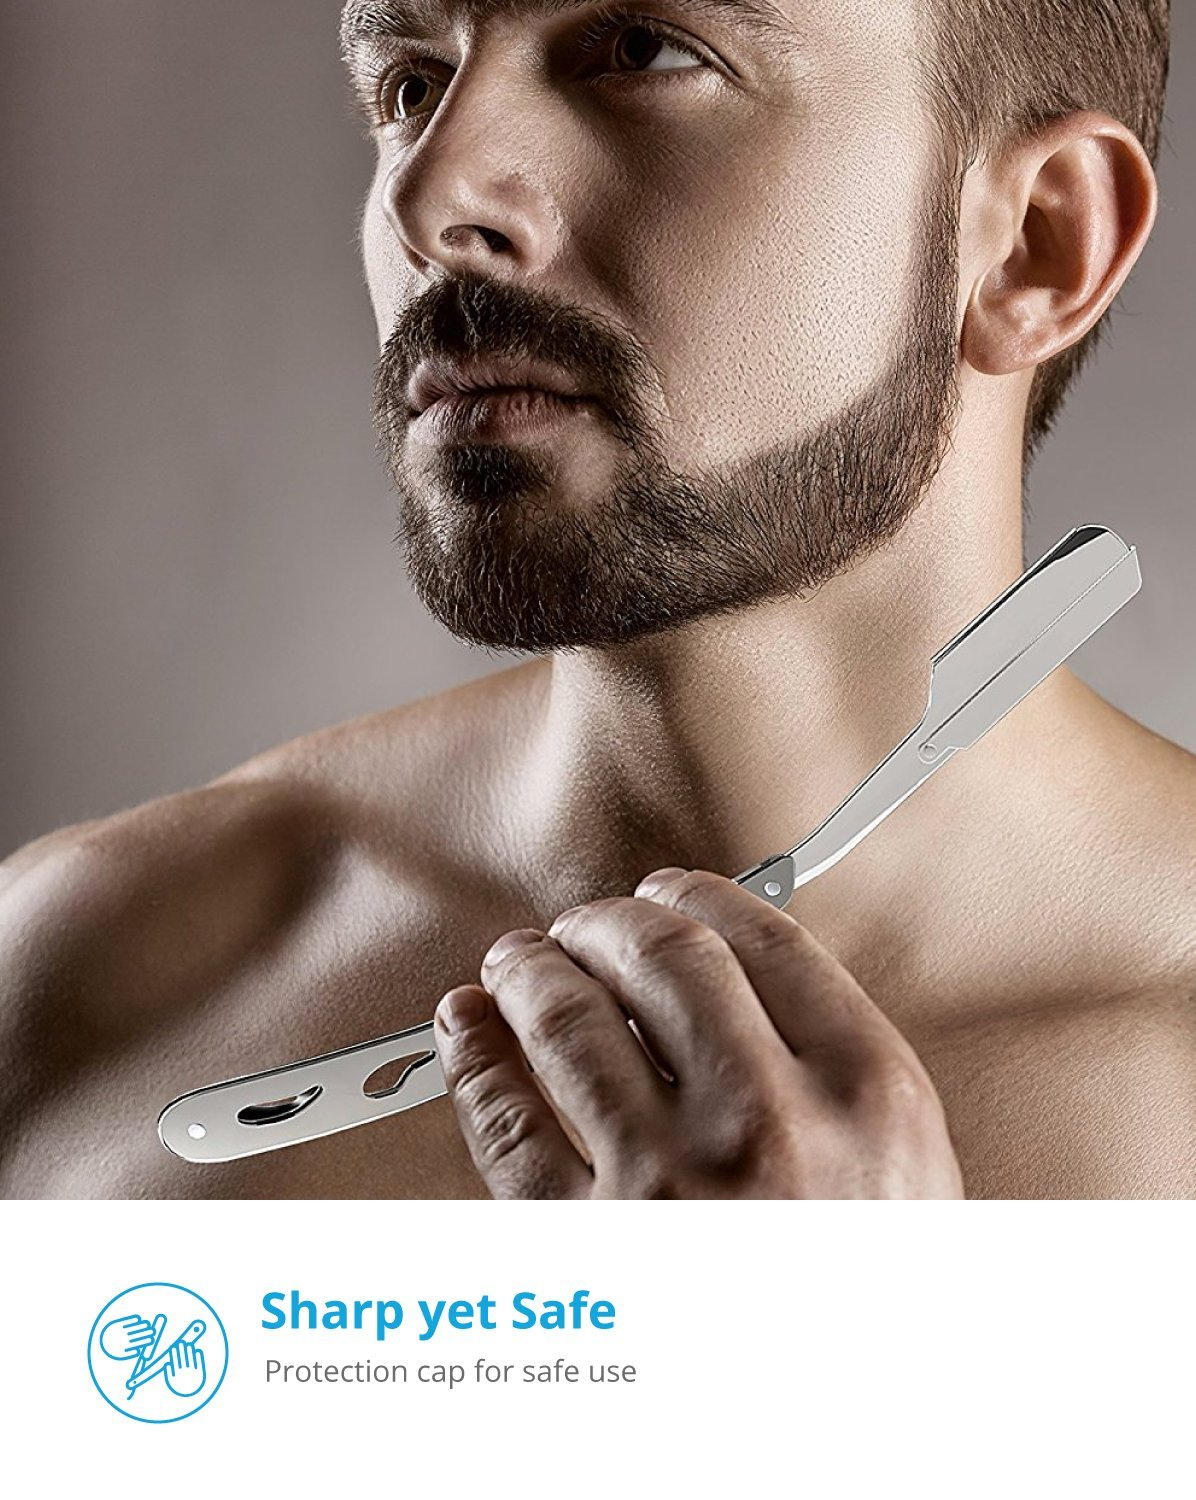 Equinox Professional Straight Edge Razor with 100 Single Edge Derby Blades - Close Shaving Men's Manual Shaver Safety by Equinox International (Image #7)